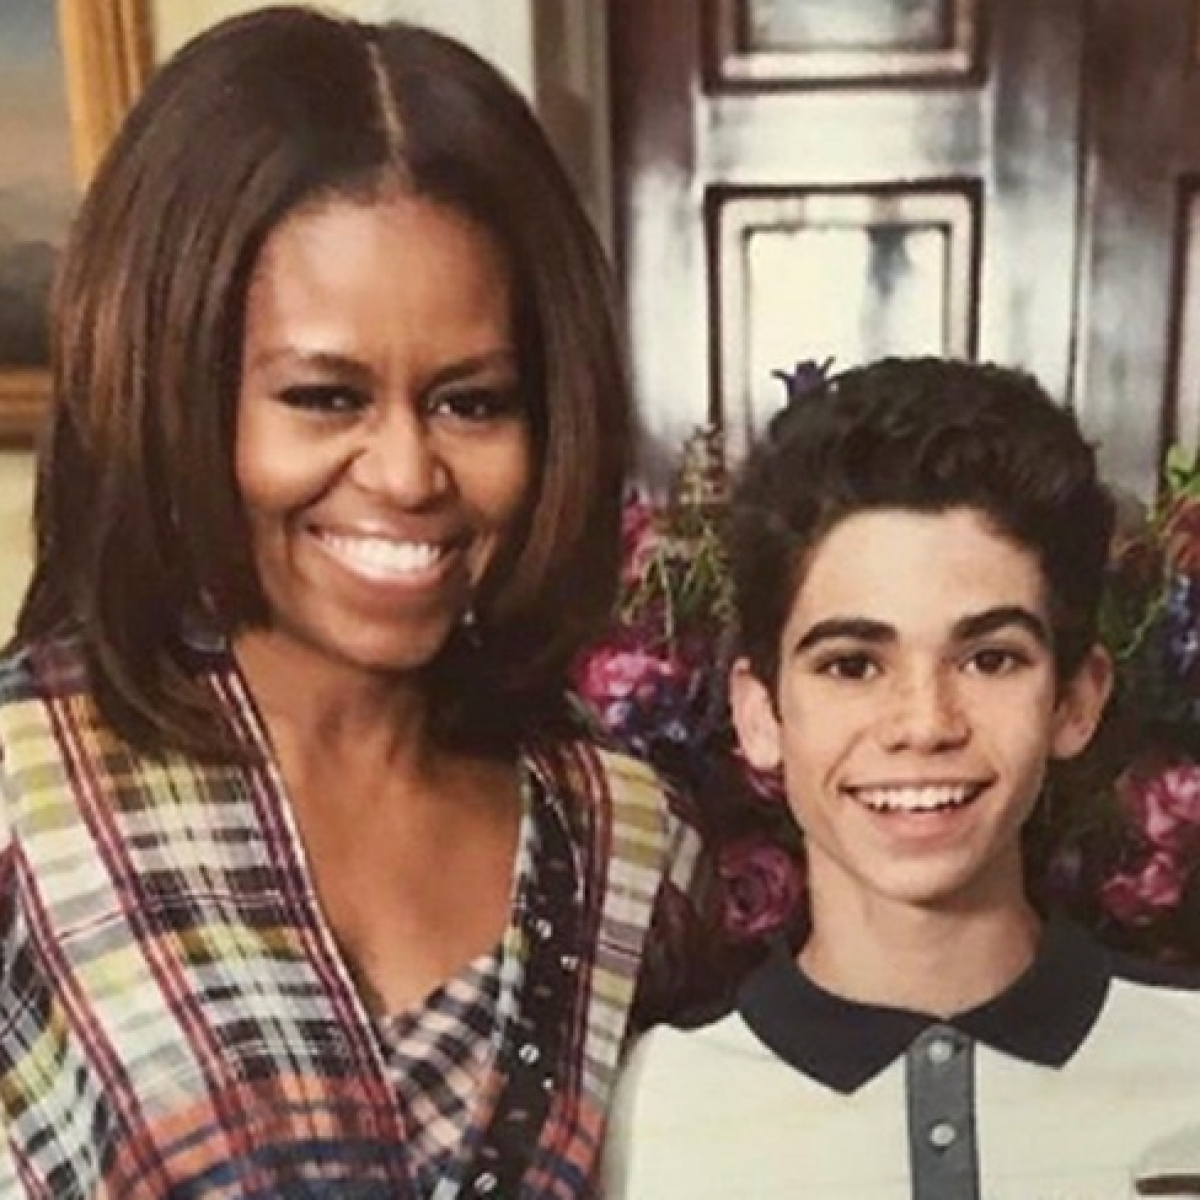 Michelle Obama remembers Cameron Boyce as having 'incredible talent'